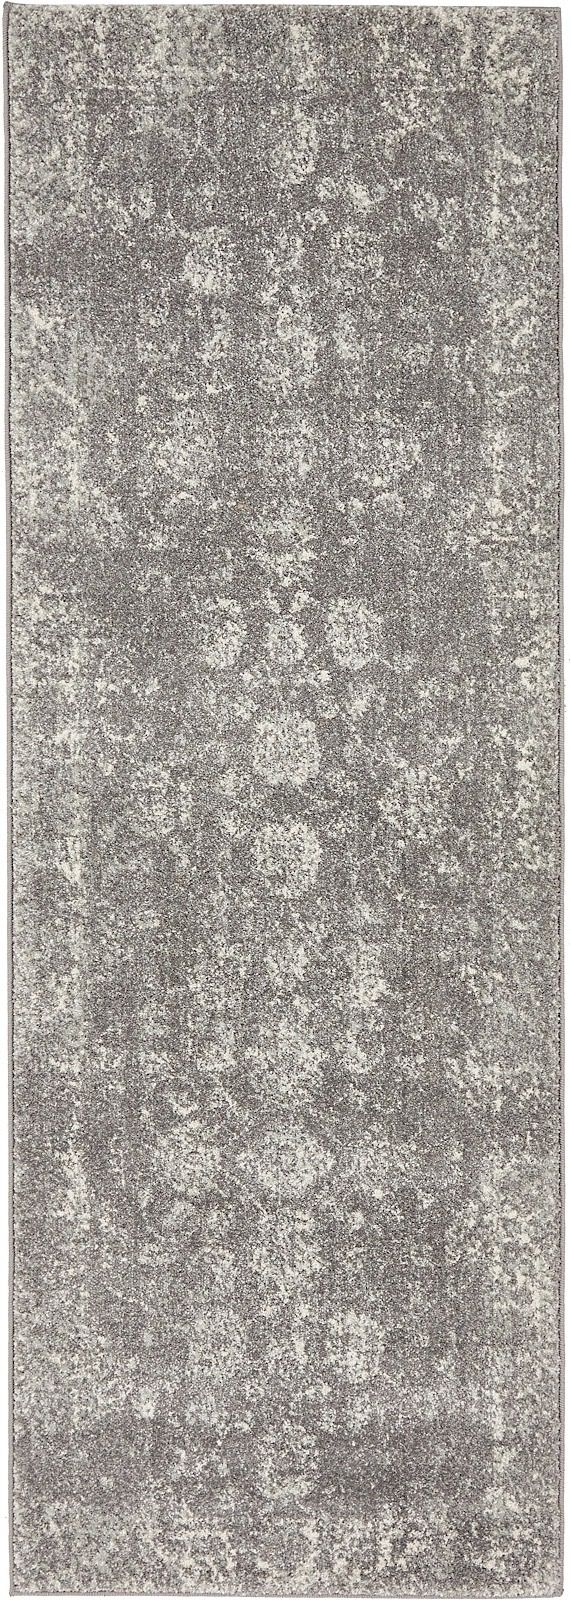 unique loom tradition traditional area rug collection